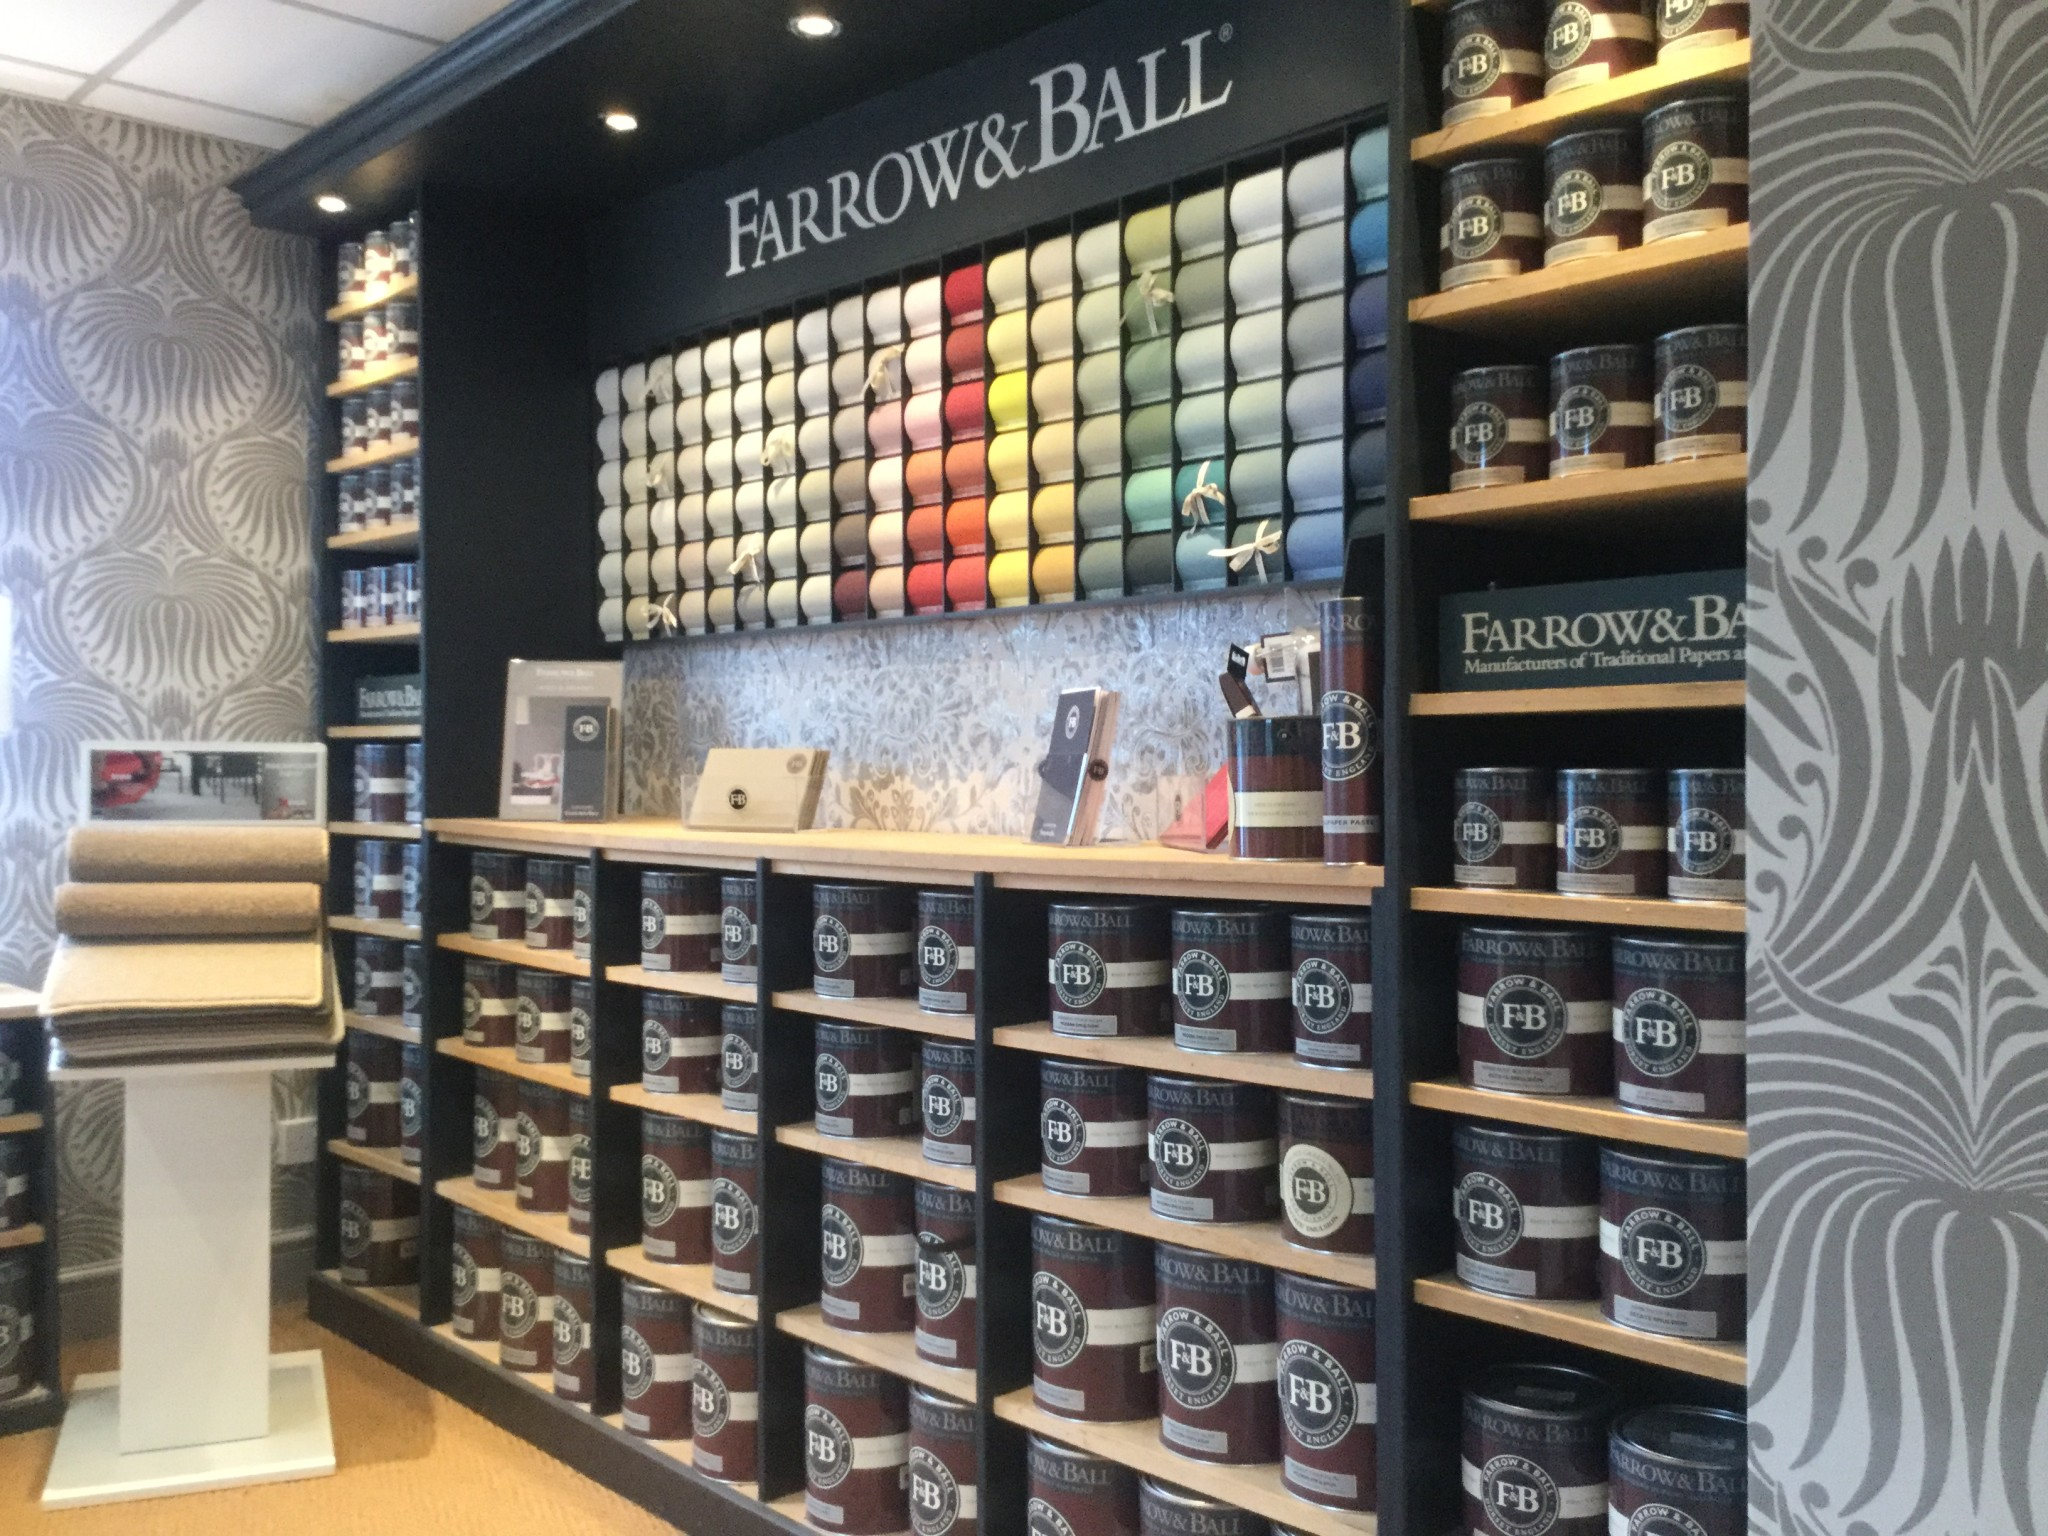 Farrow And Ball Décoration Farrow And Ball Paint In Cheshire